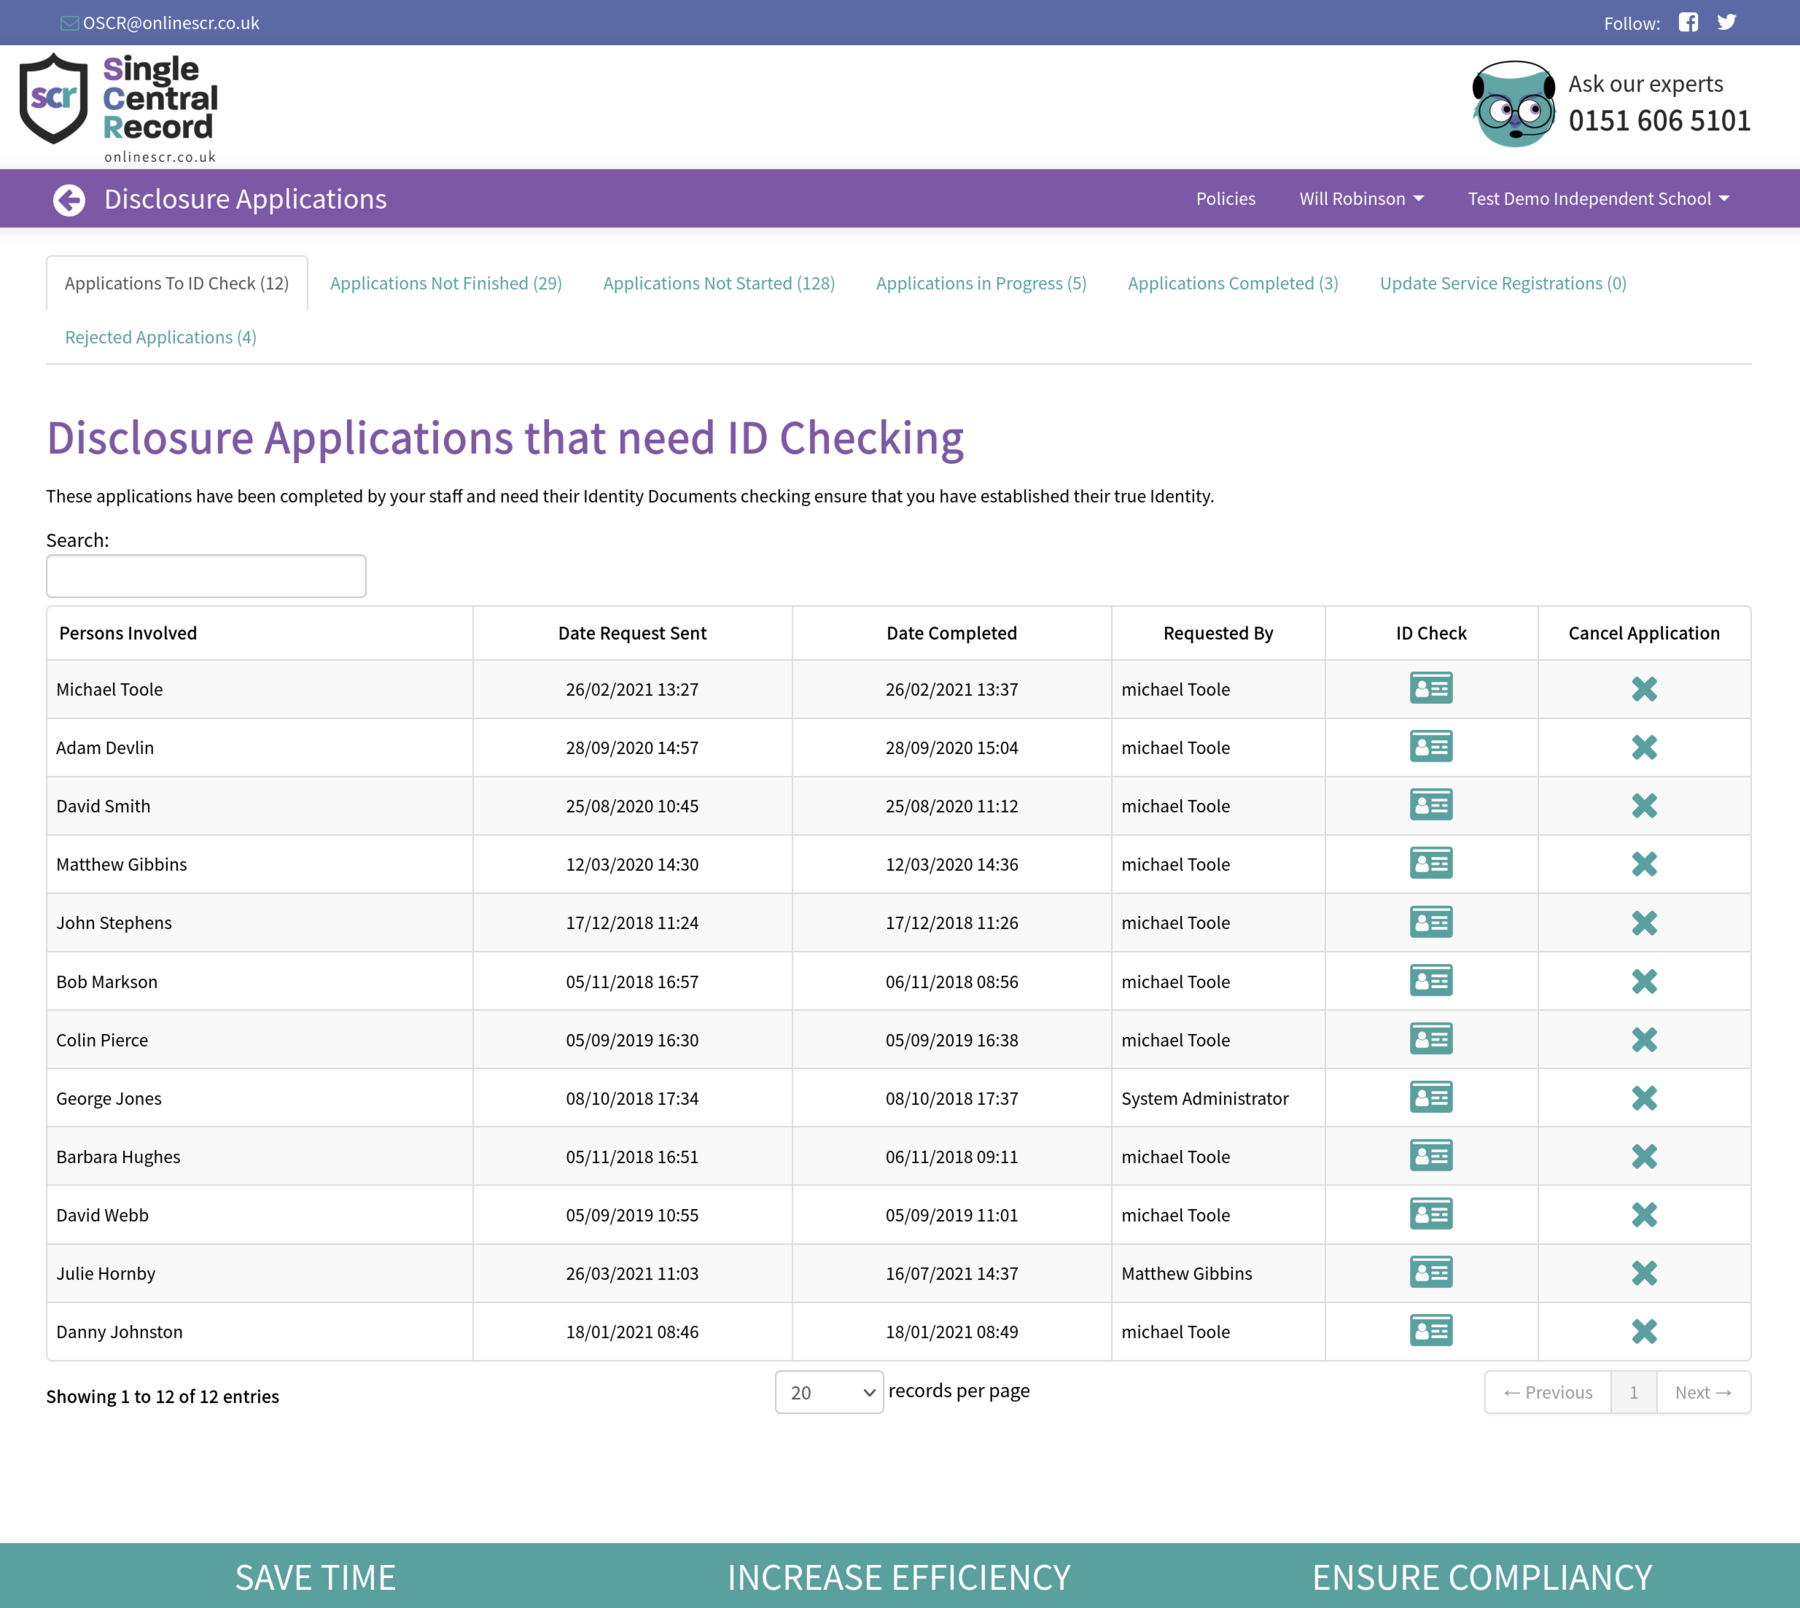 Screenshot of the Disclosure Applications that need ID Checking screen